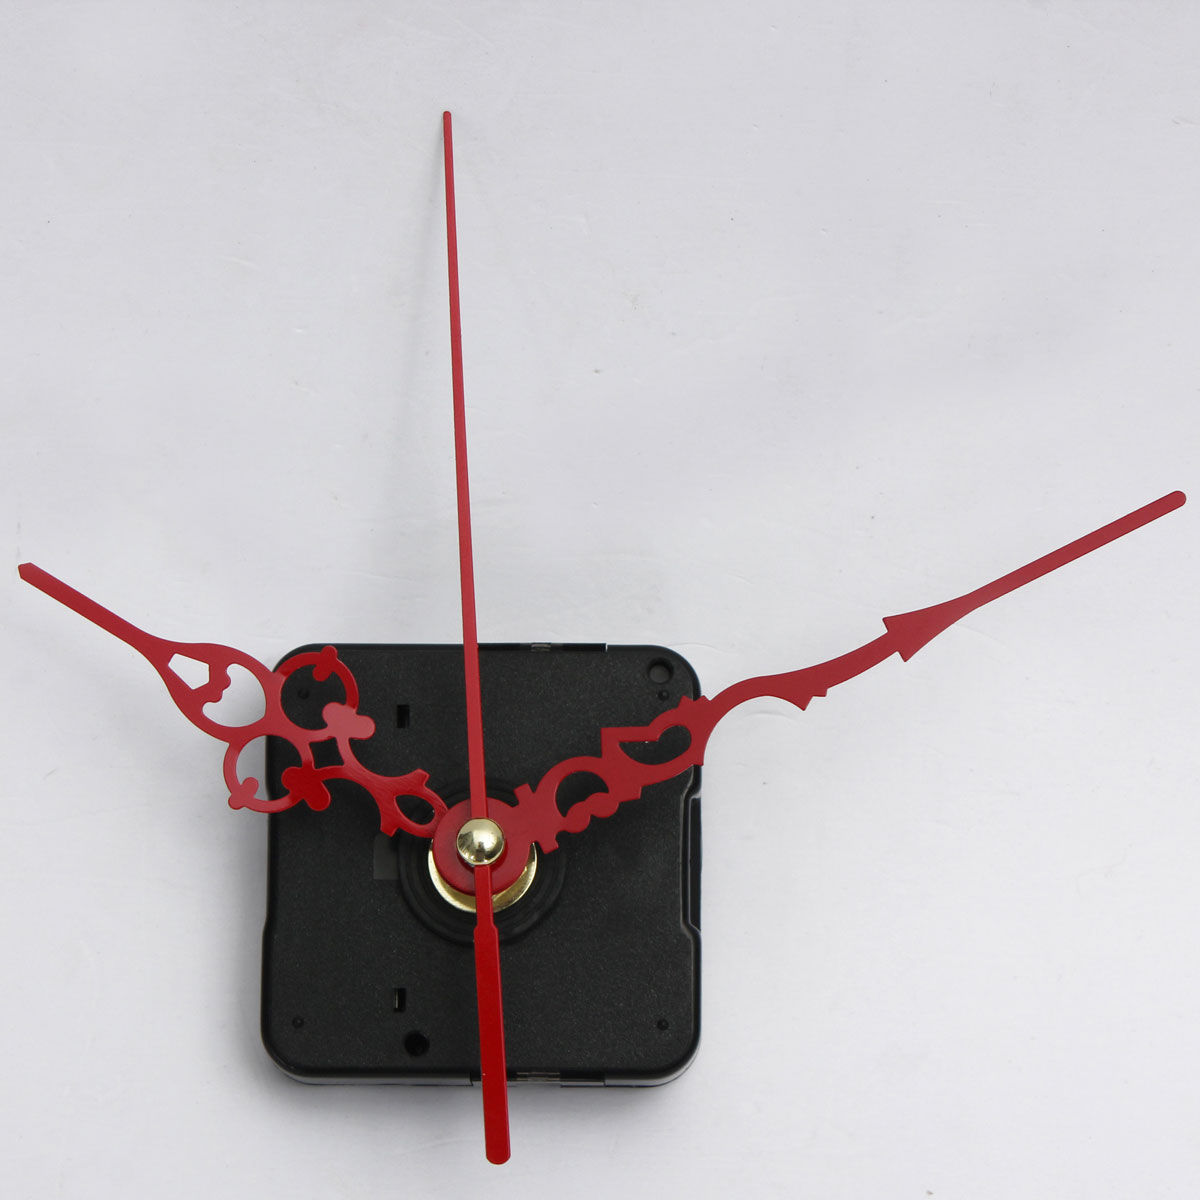 RED HANDS QUARTZ CLOCK WALL MOVEMENT DIY MECHANISM REPAIR PART KITS REPLACE NEW Item condition: New with tags Quantity: 30 SKU:(China (Mainland))